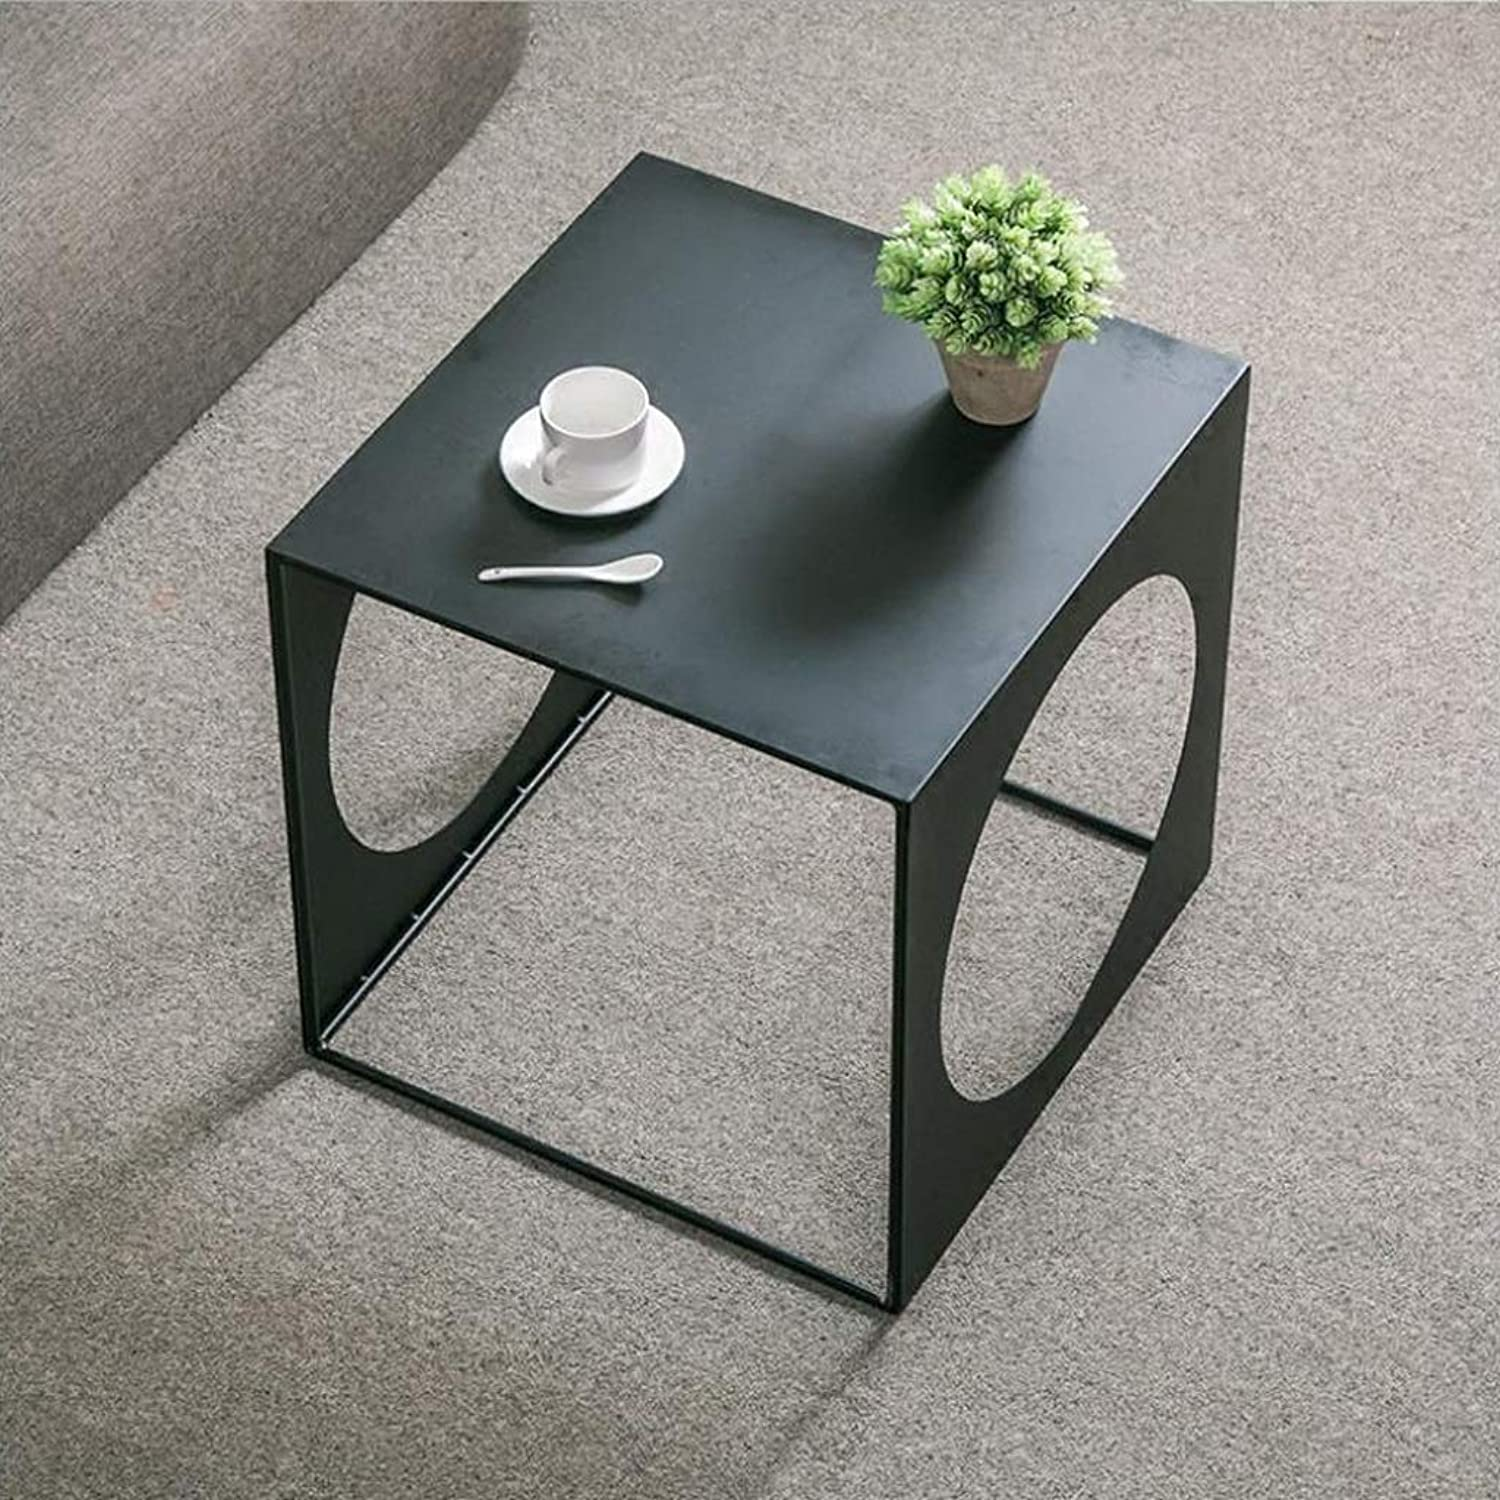 End Table, Iron Square Hollow Coffee Table, Metal Frame, Living Room Sofa Cafe Multifunctional Side Table (Size   50CM)